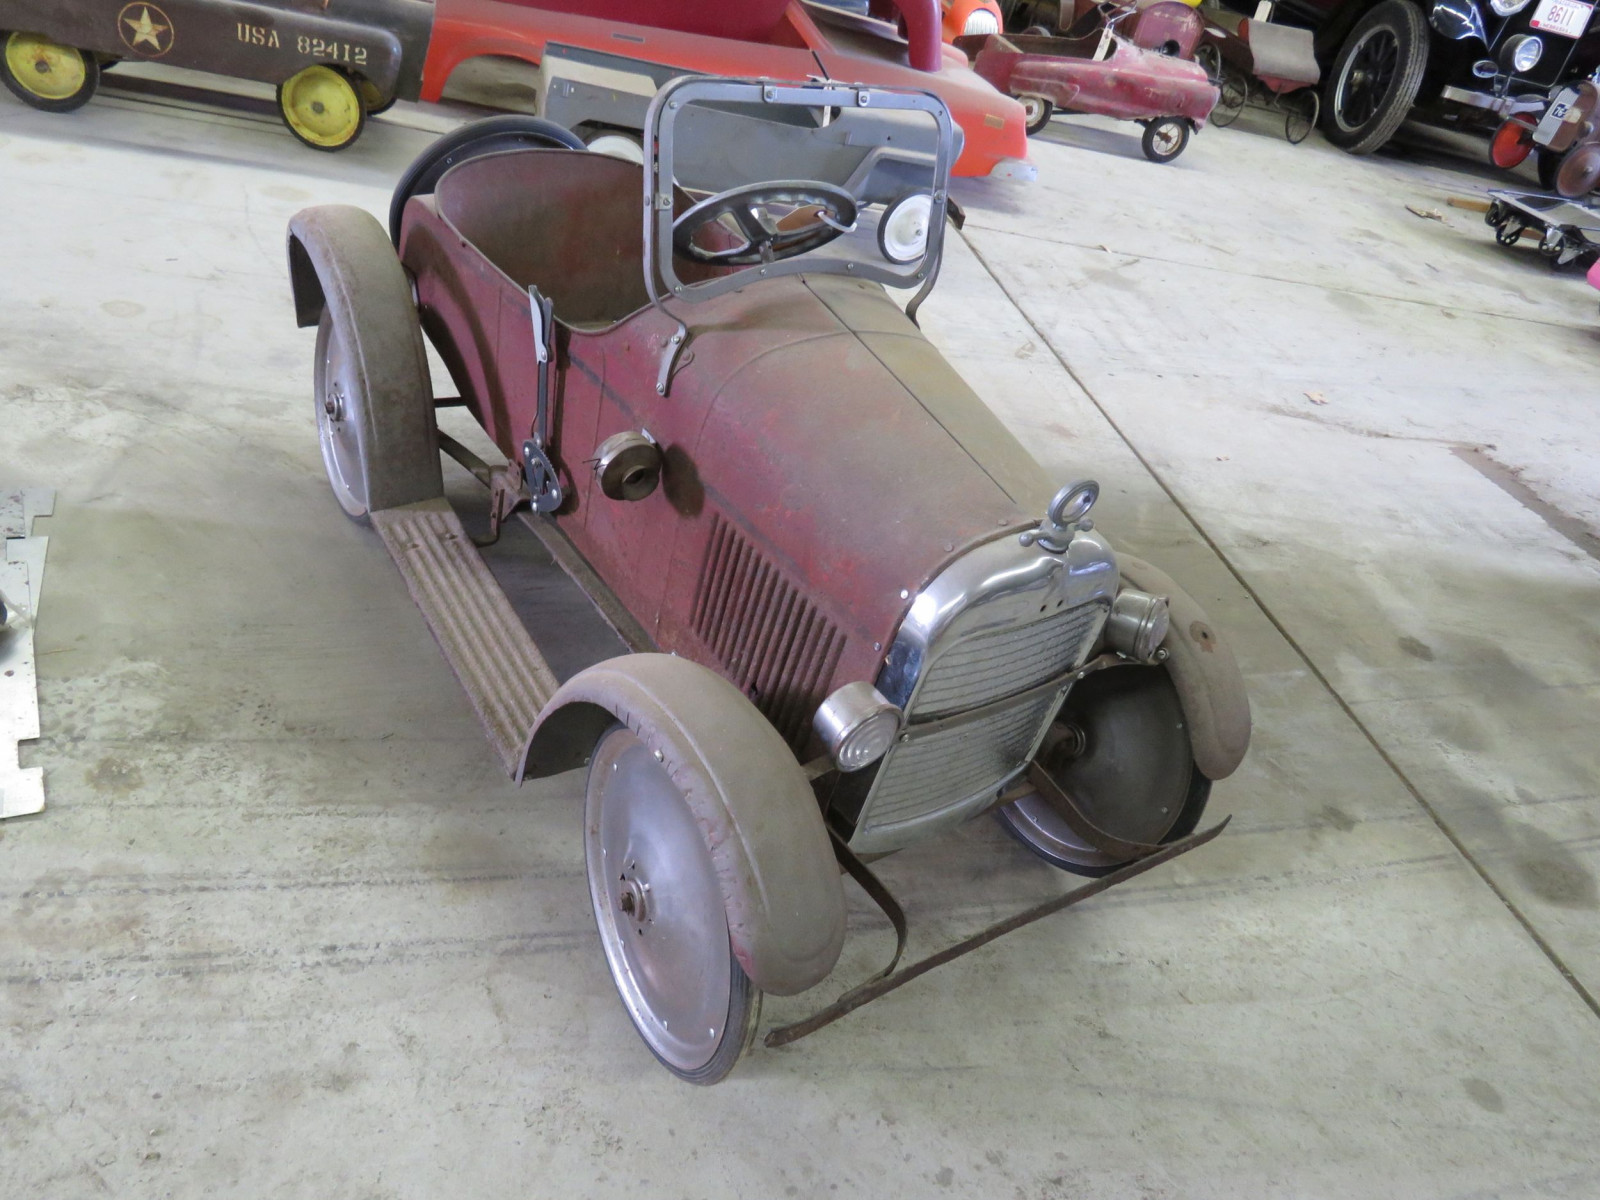 Rare Steel craft Studebaker Pedal Car - Image 1